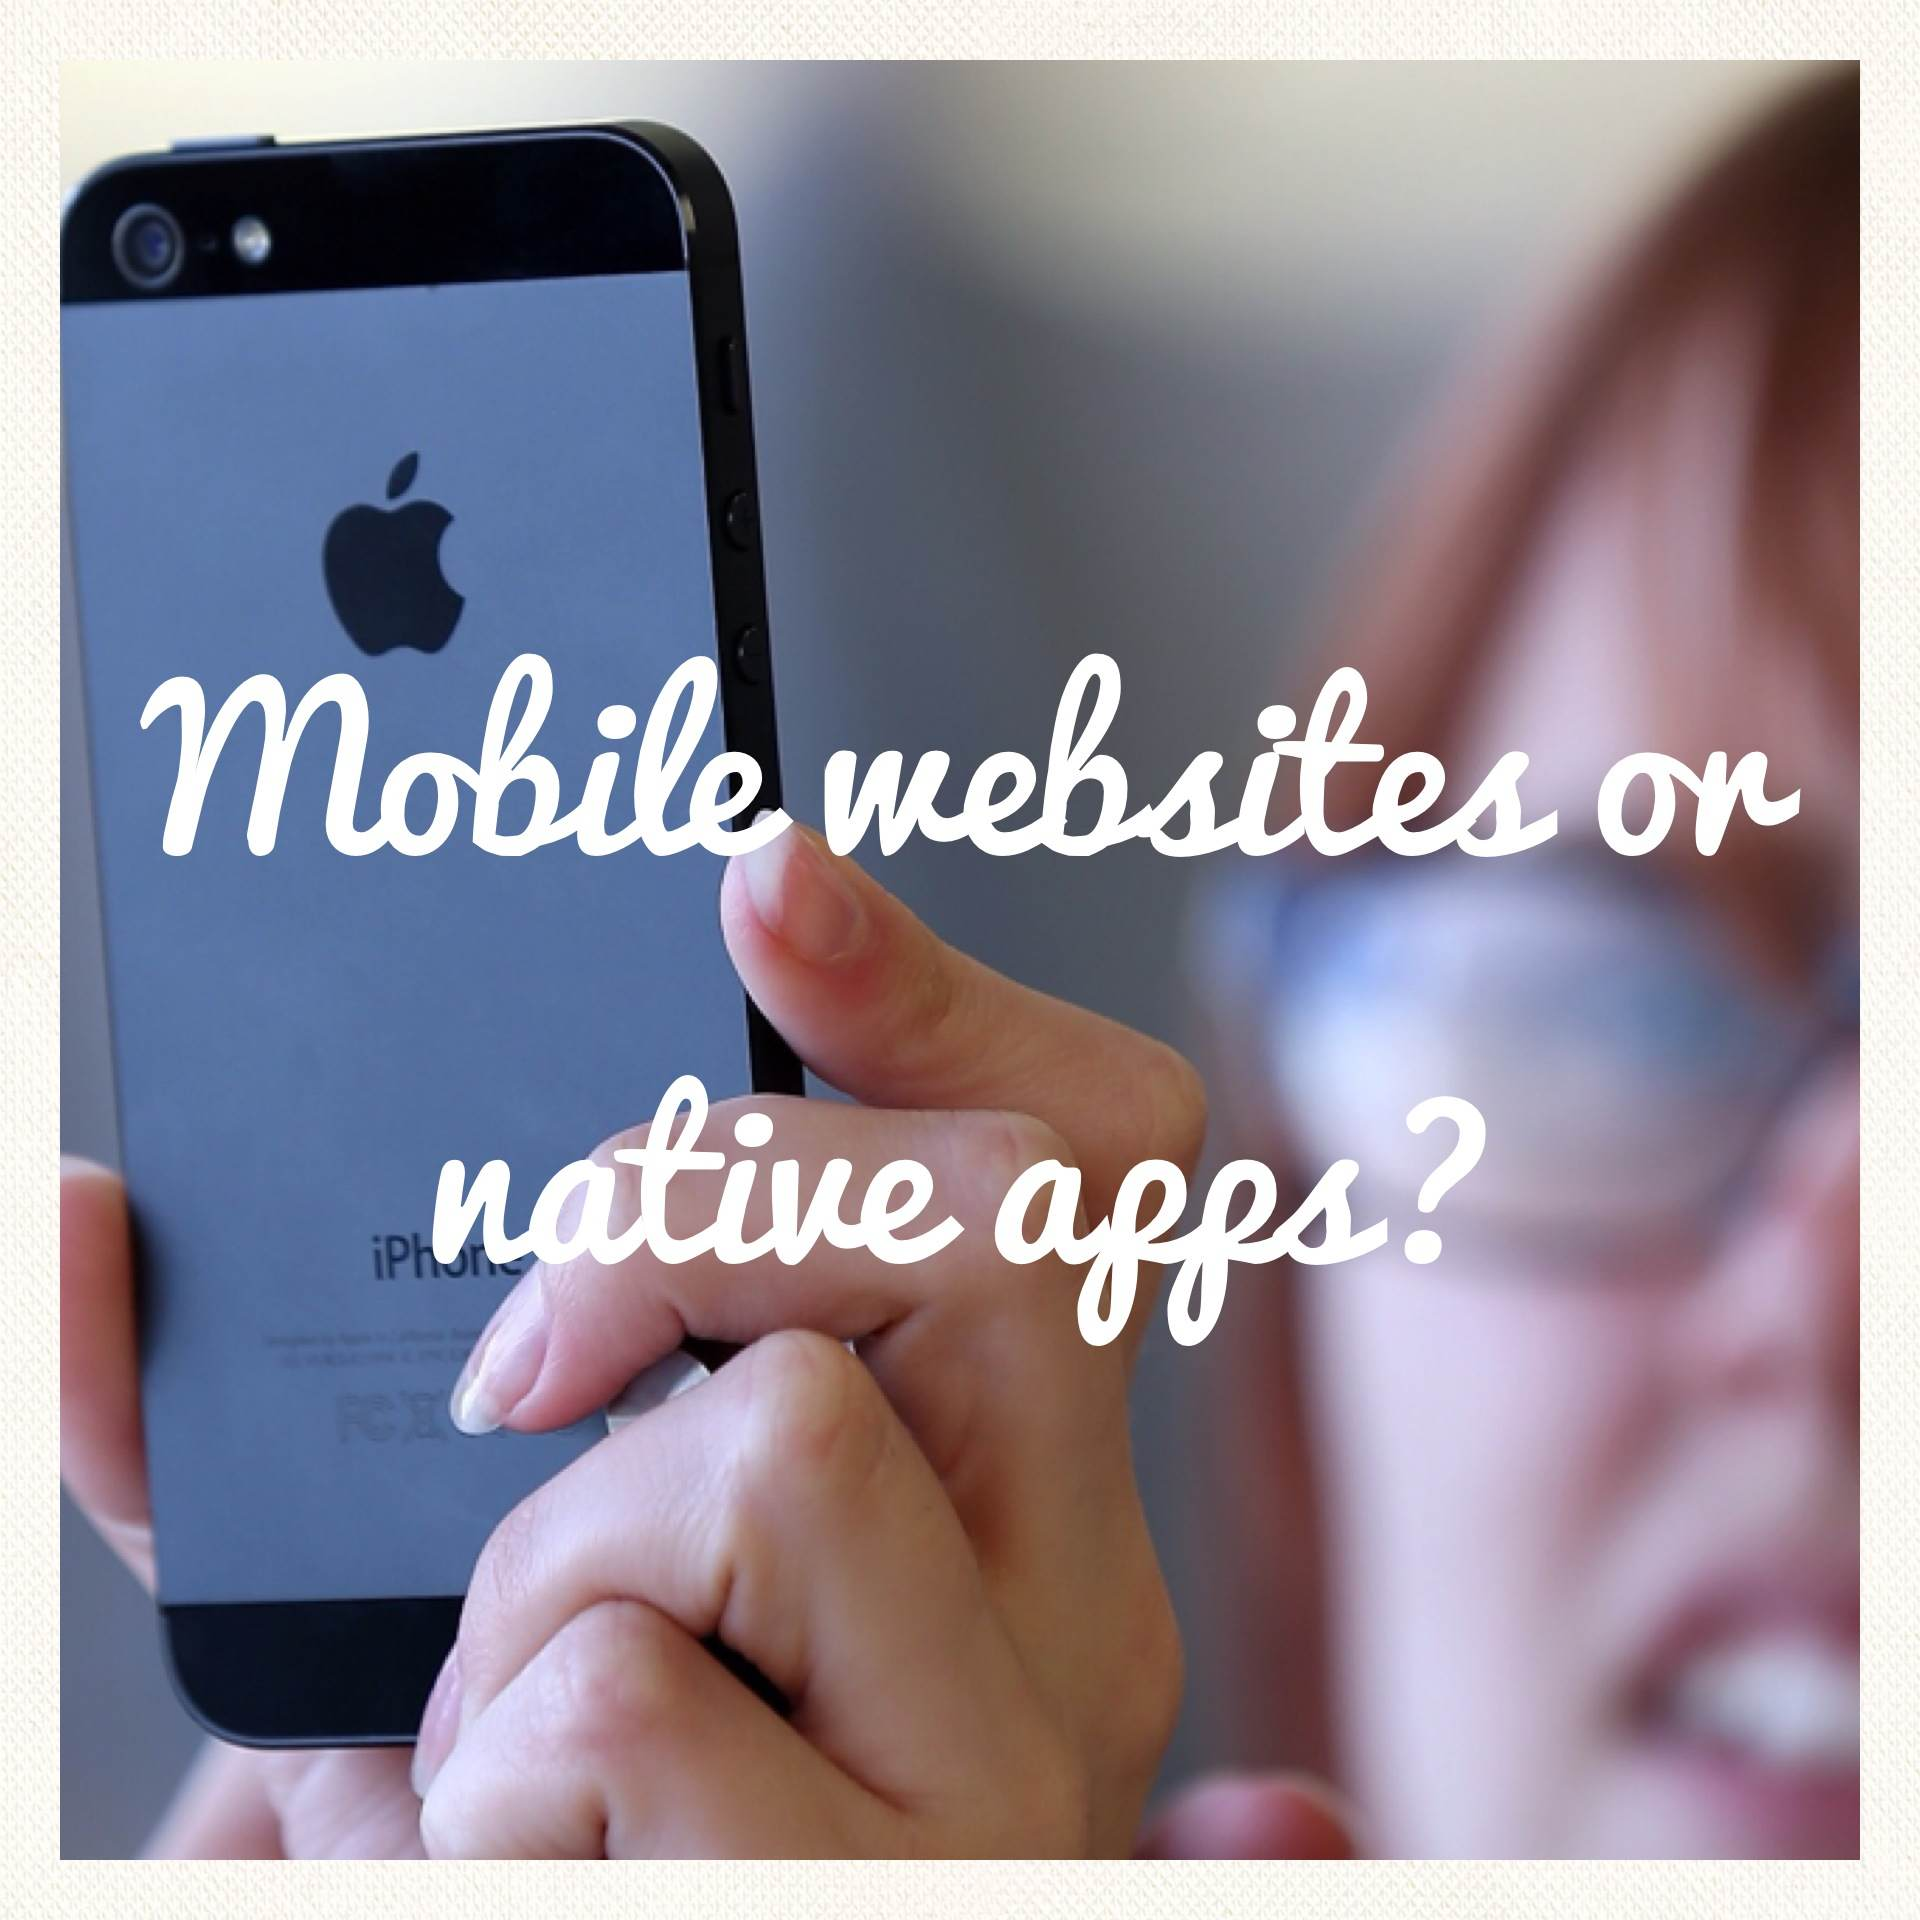 Mobile websites or native apps?